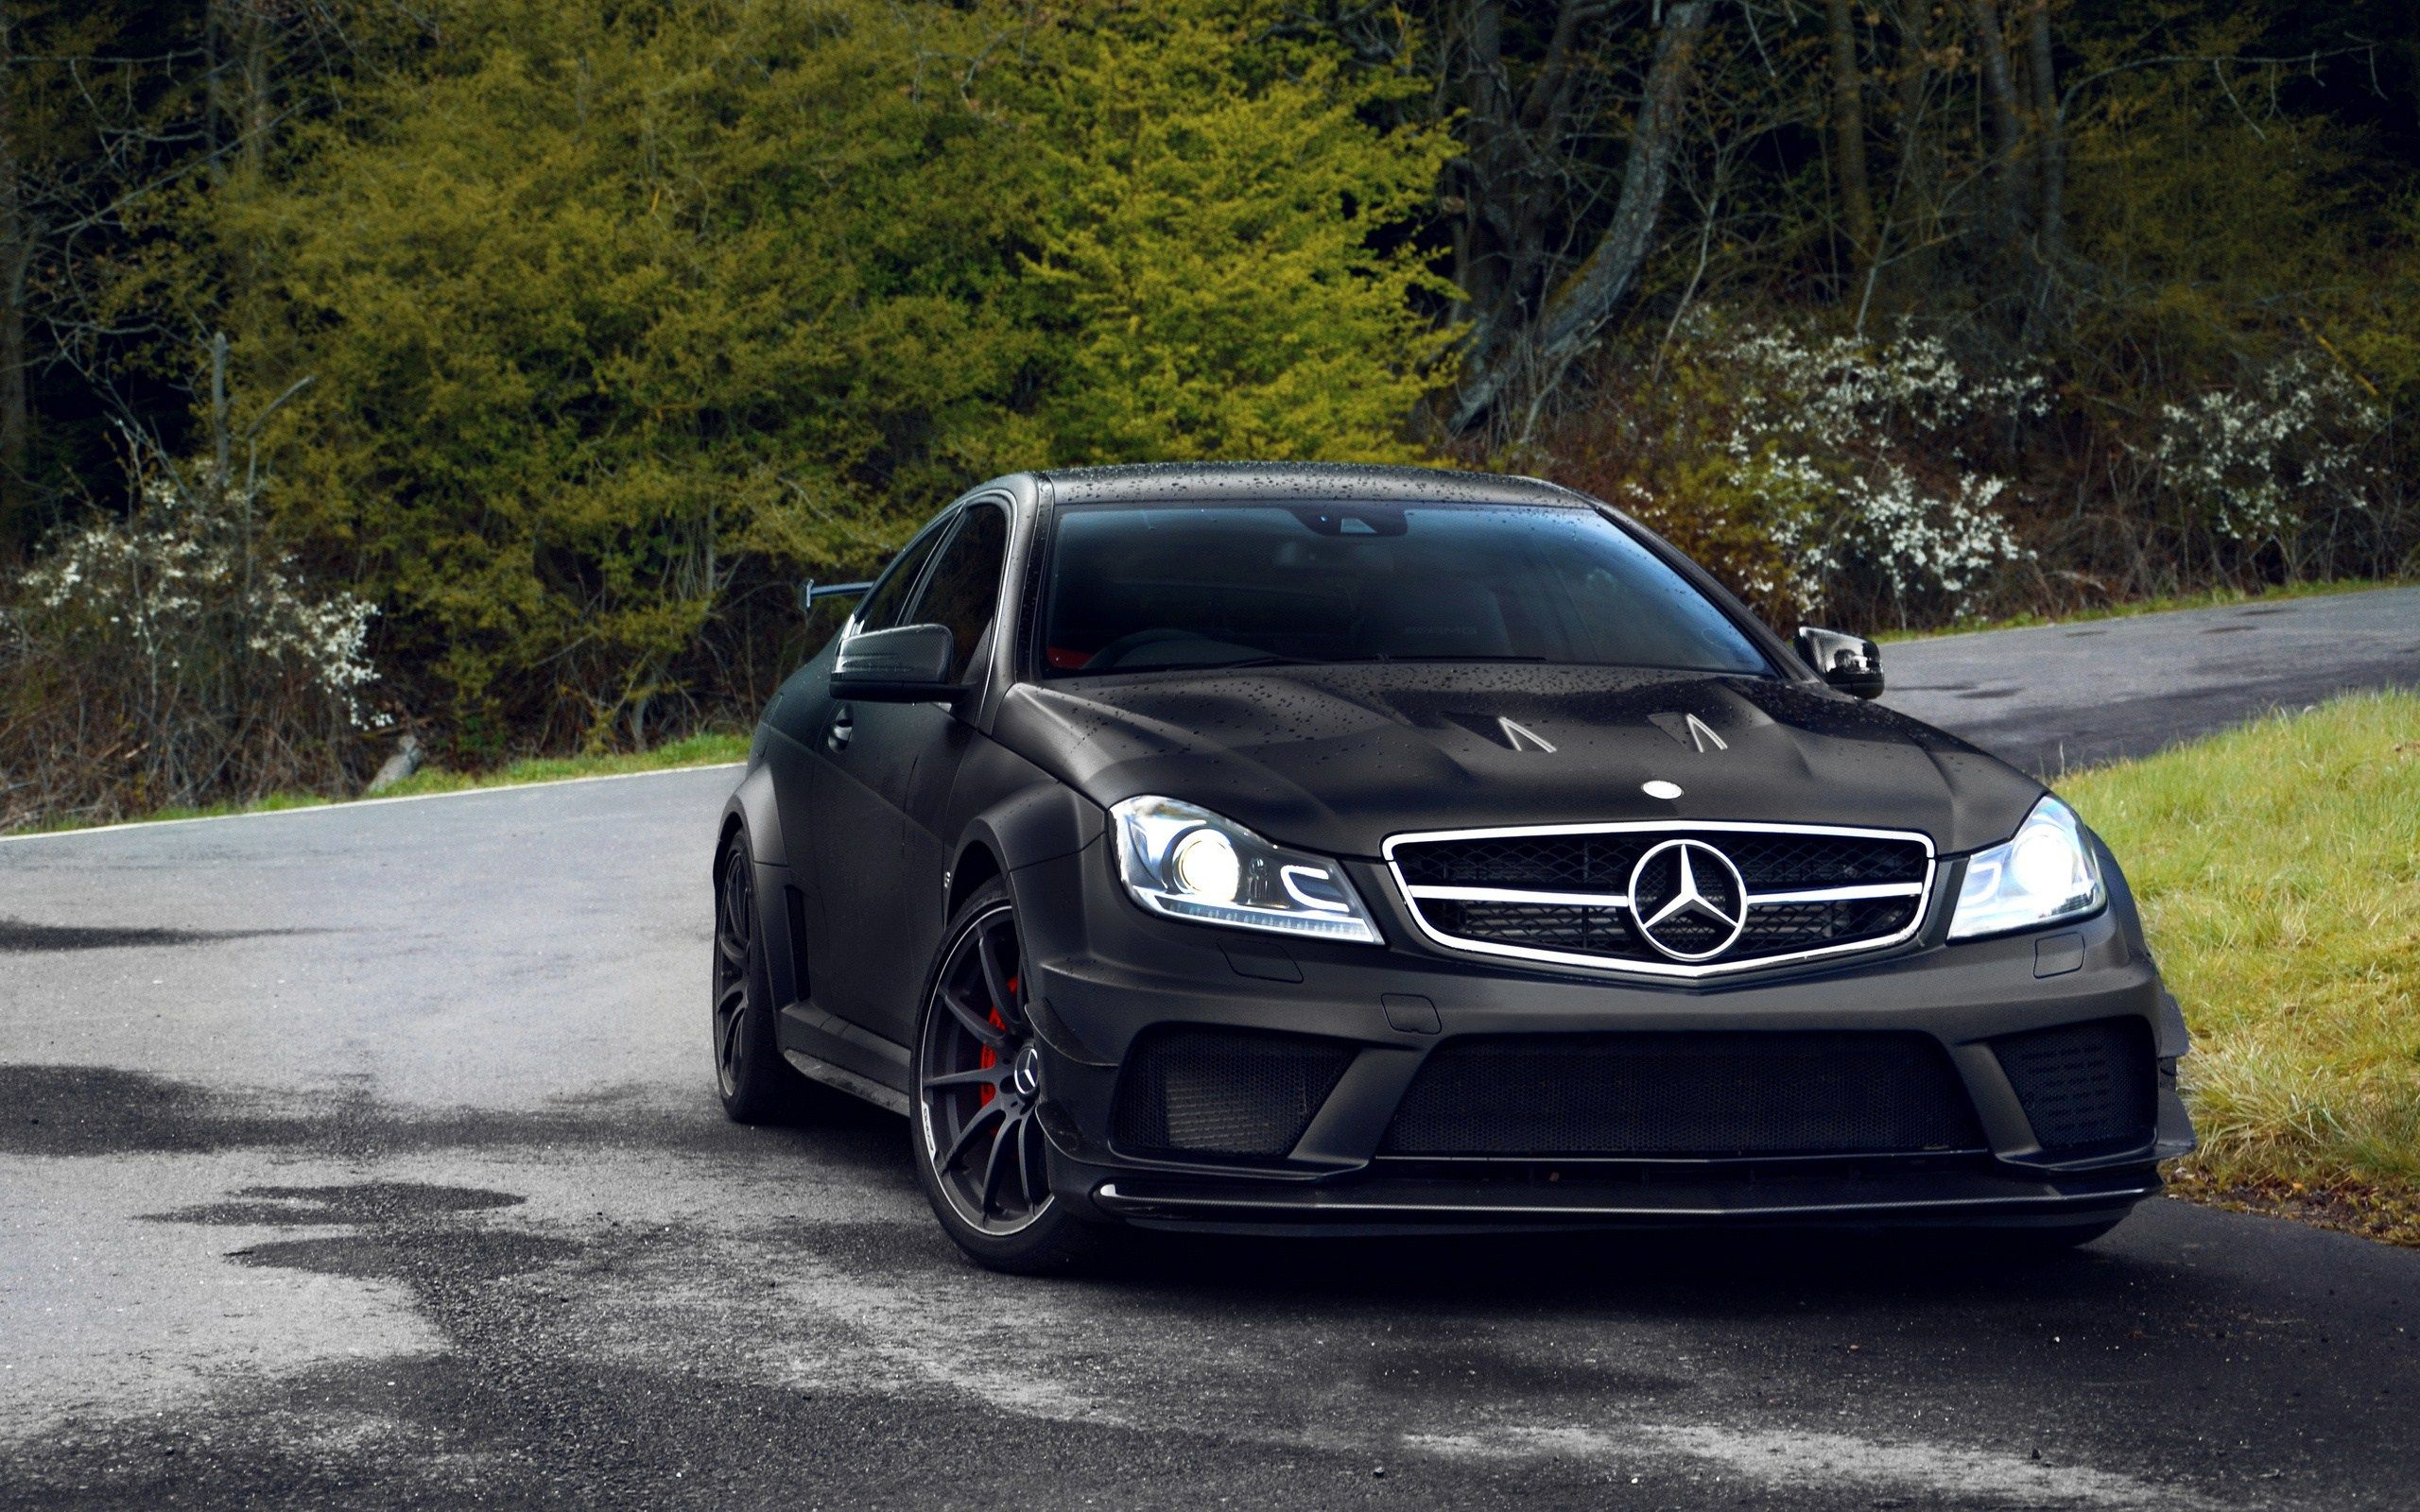 2012 mercedes benz c63 amg car wallpaper wallpaper free download - Mercedes Benz Amg Blackseries Of Bas Fransen Car Photography Find This Pin And More On Download Wallpaper